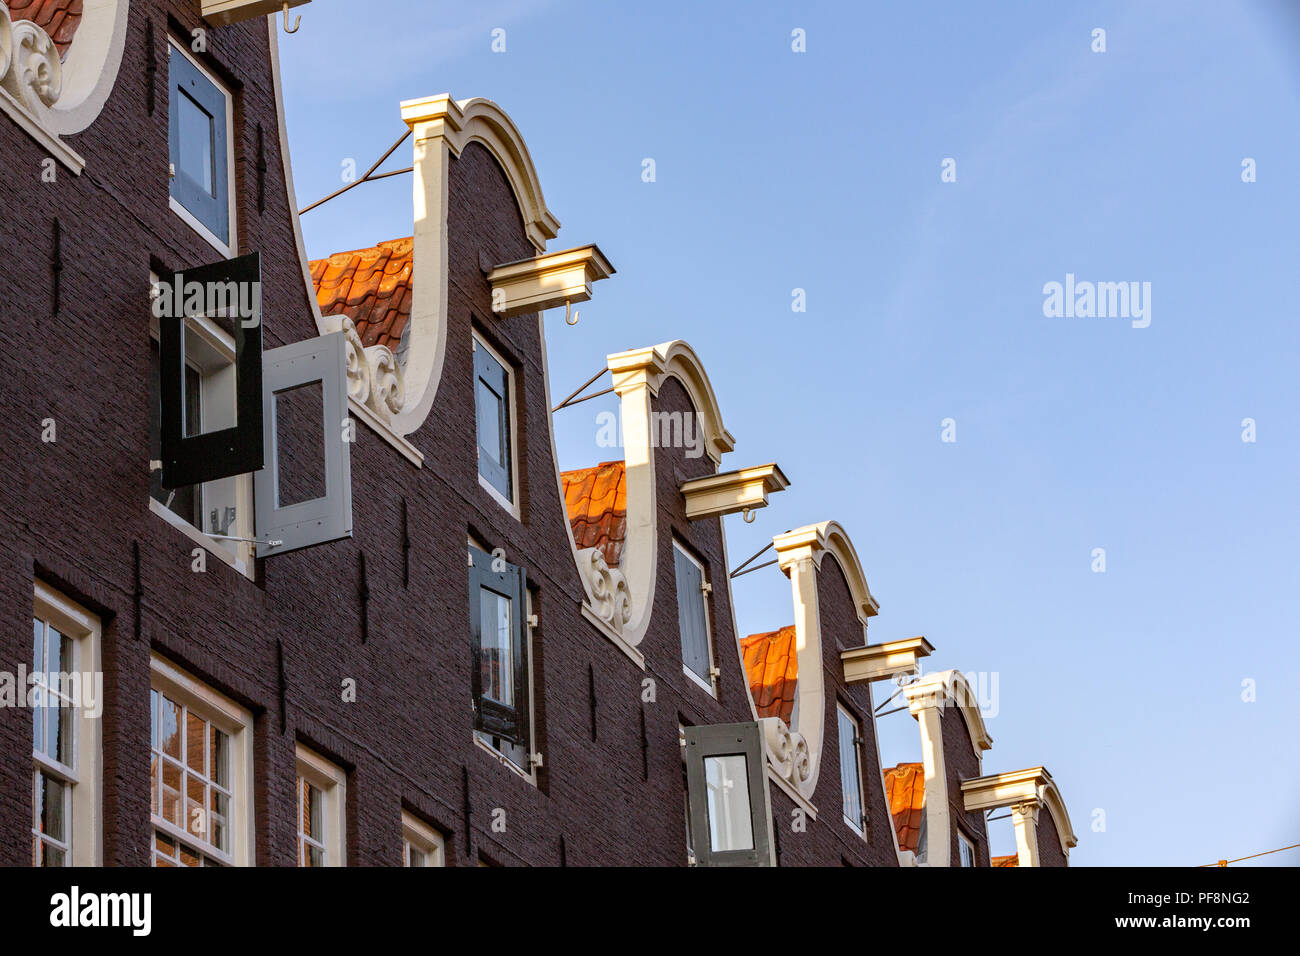 AMSTERDAM, THE NETHERLANDS - AUGUST 6, 2018: A row of Dutch ornate gabled rooftops with moving hooks. - Stock Image